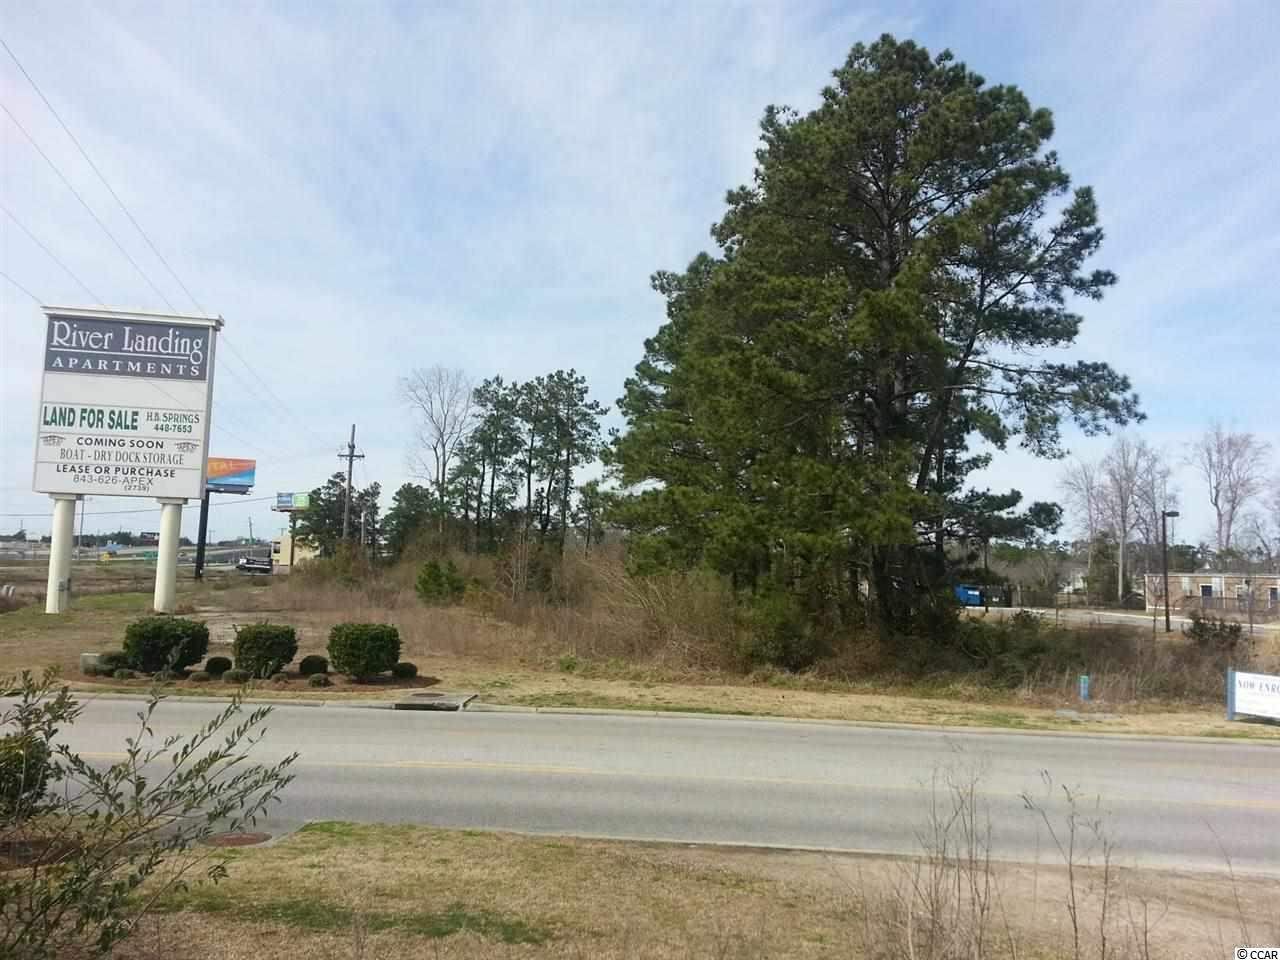 CORNER LOT 1.4 Acre right off Hwy 501 and Waccamaw Blvd. Located close to the Waterway, River Oaks golf course and Bridgewater Academy. Prime commercial property zoned Resort Commercial.